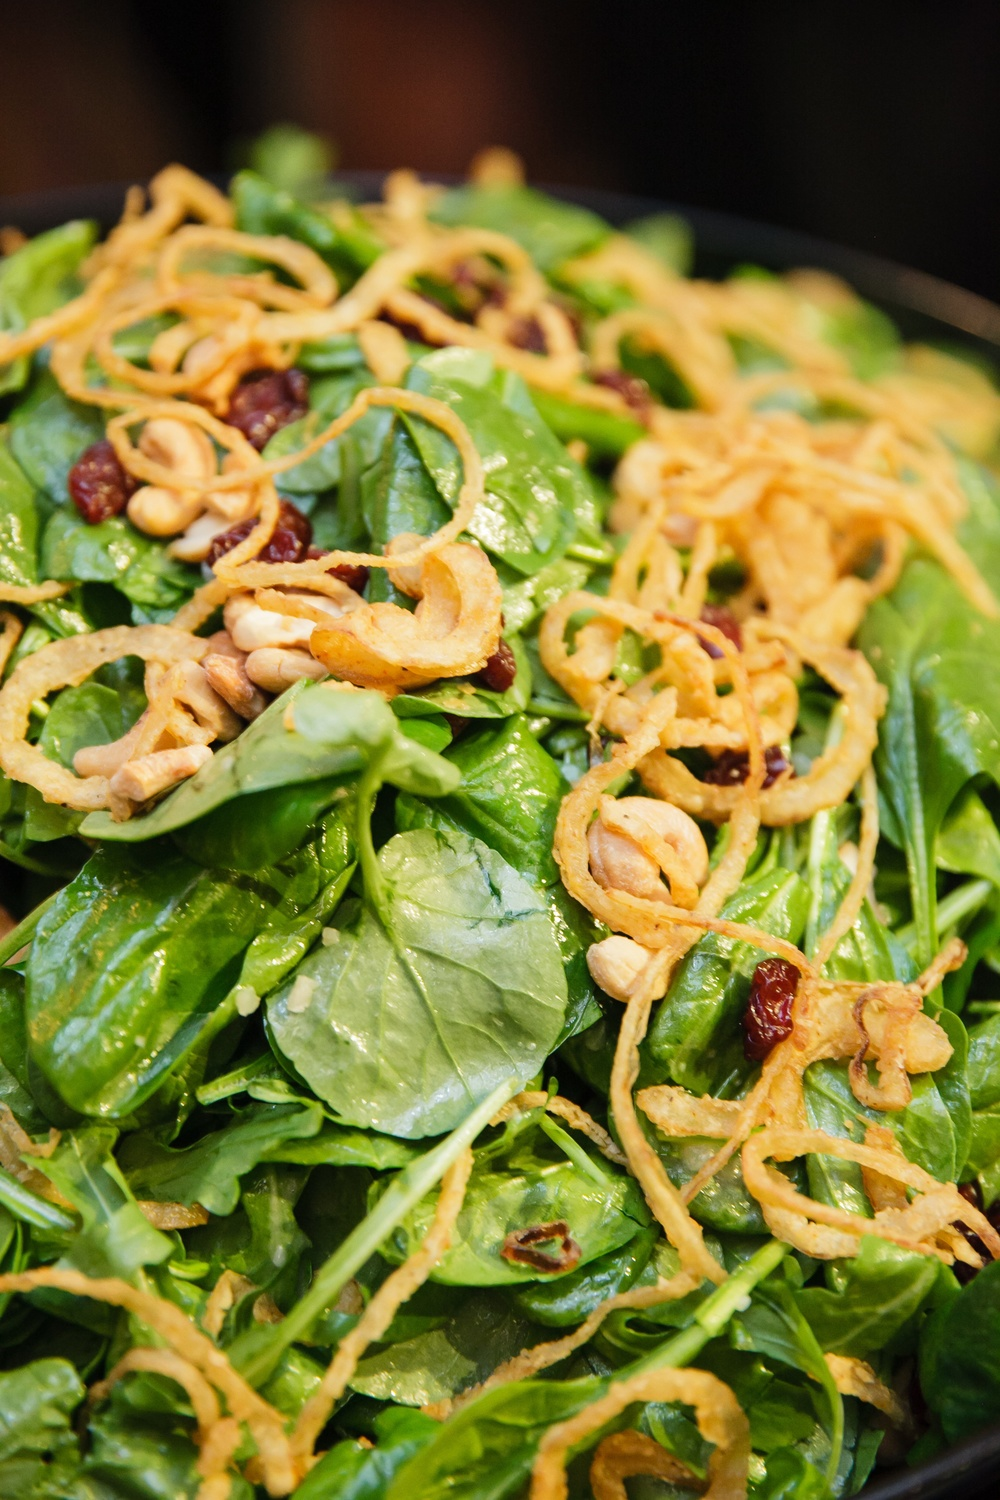 Organic Watercress, Spinach, and Arugula Salad with Dried Cherries and Cashews tossed in a Anjou Pear Vinaigrette and garnished with Sweet Crispy Onions | Red Sparrow Photography